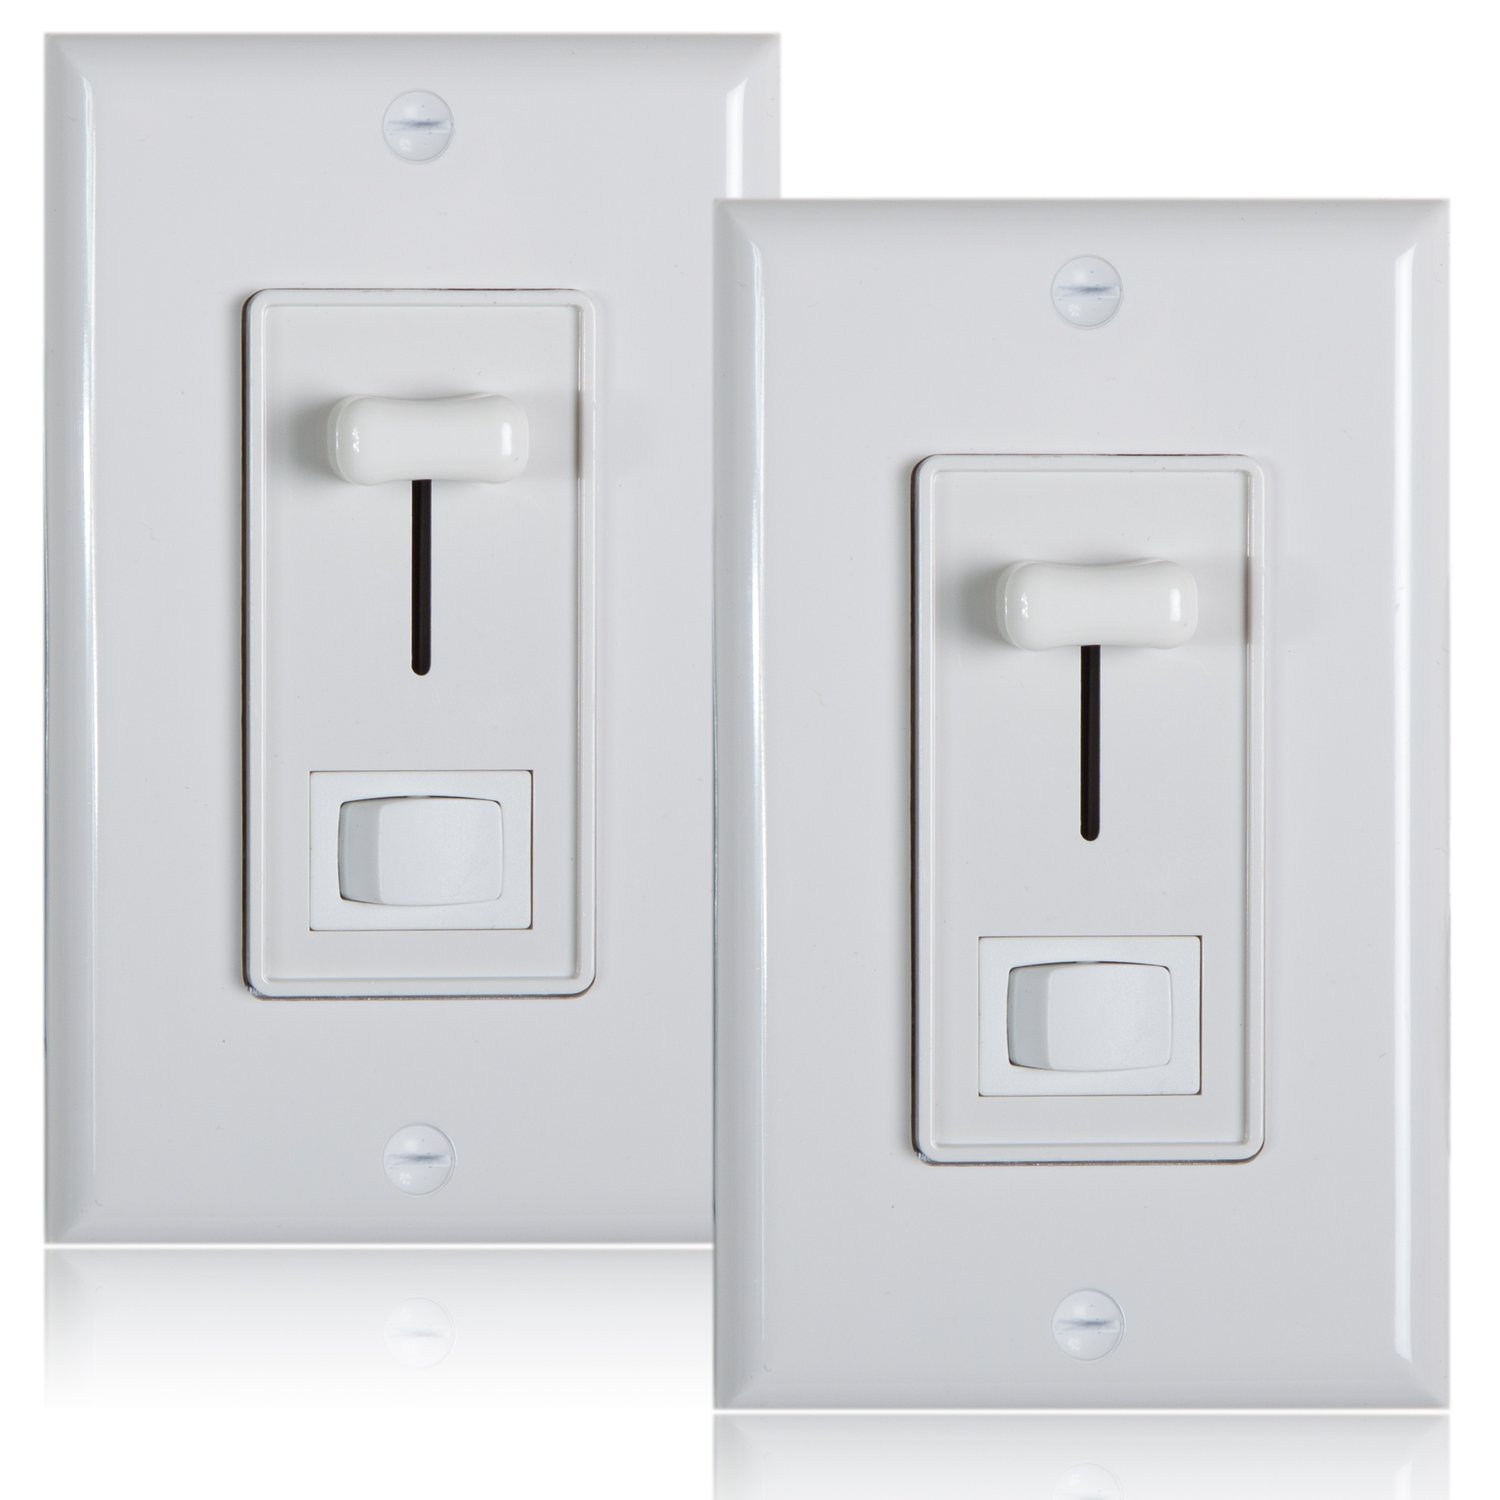 Maxxima 3Way Single Pole Dimmer Electrical light Switch 600 Watt